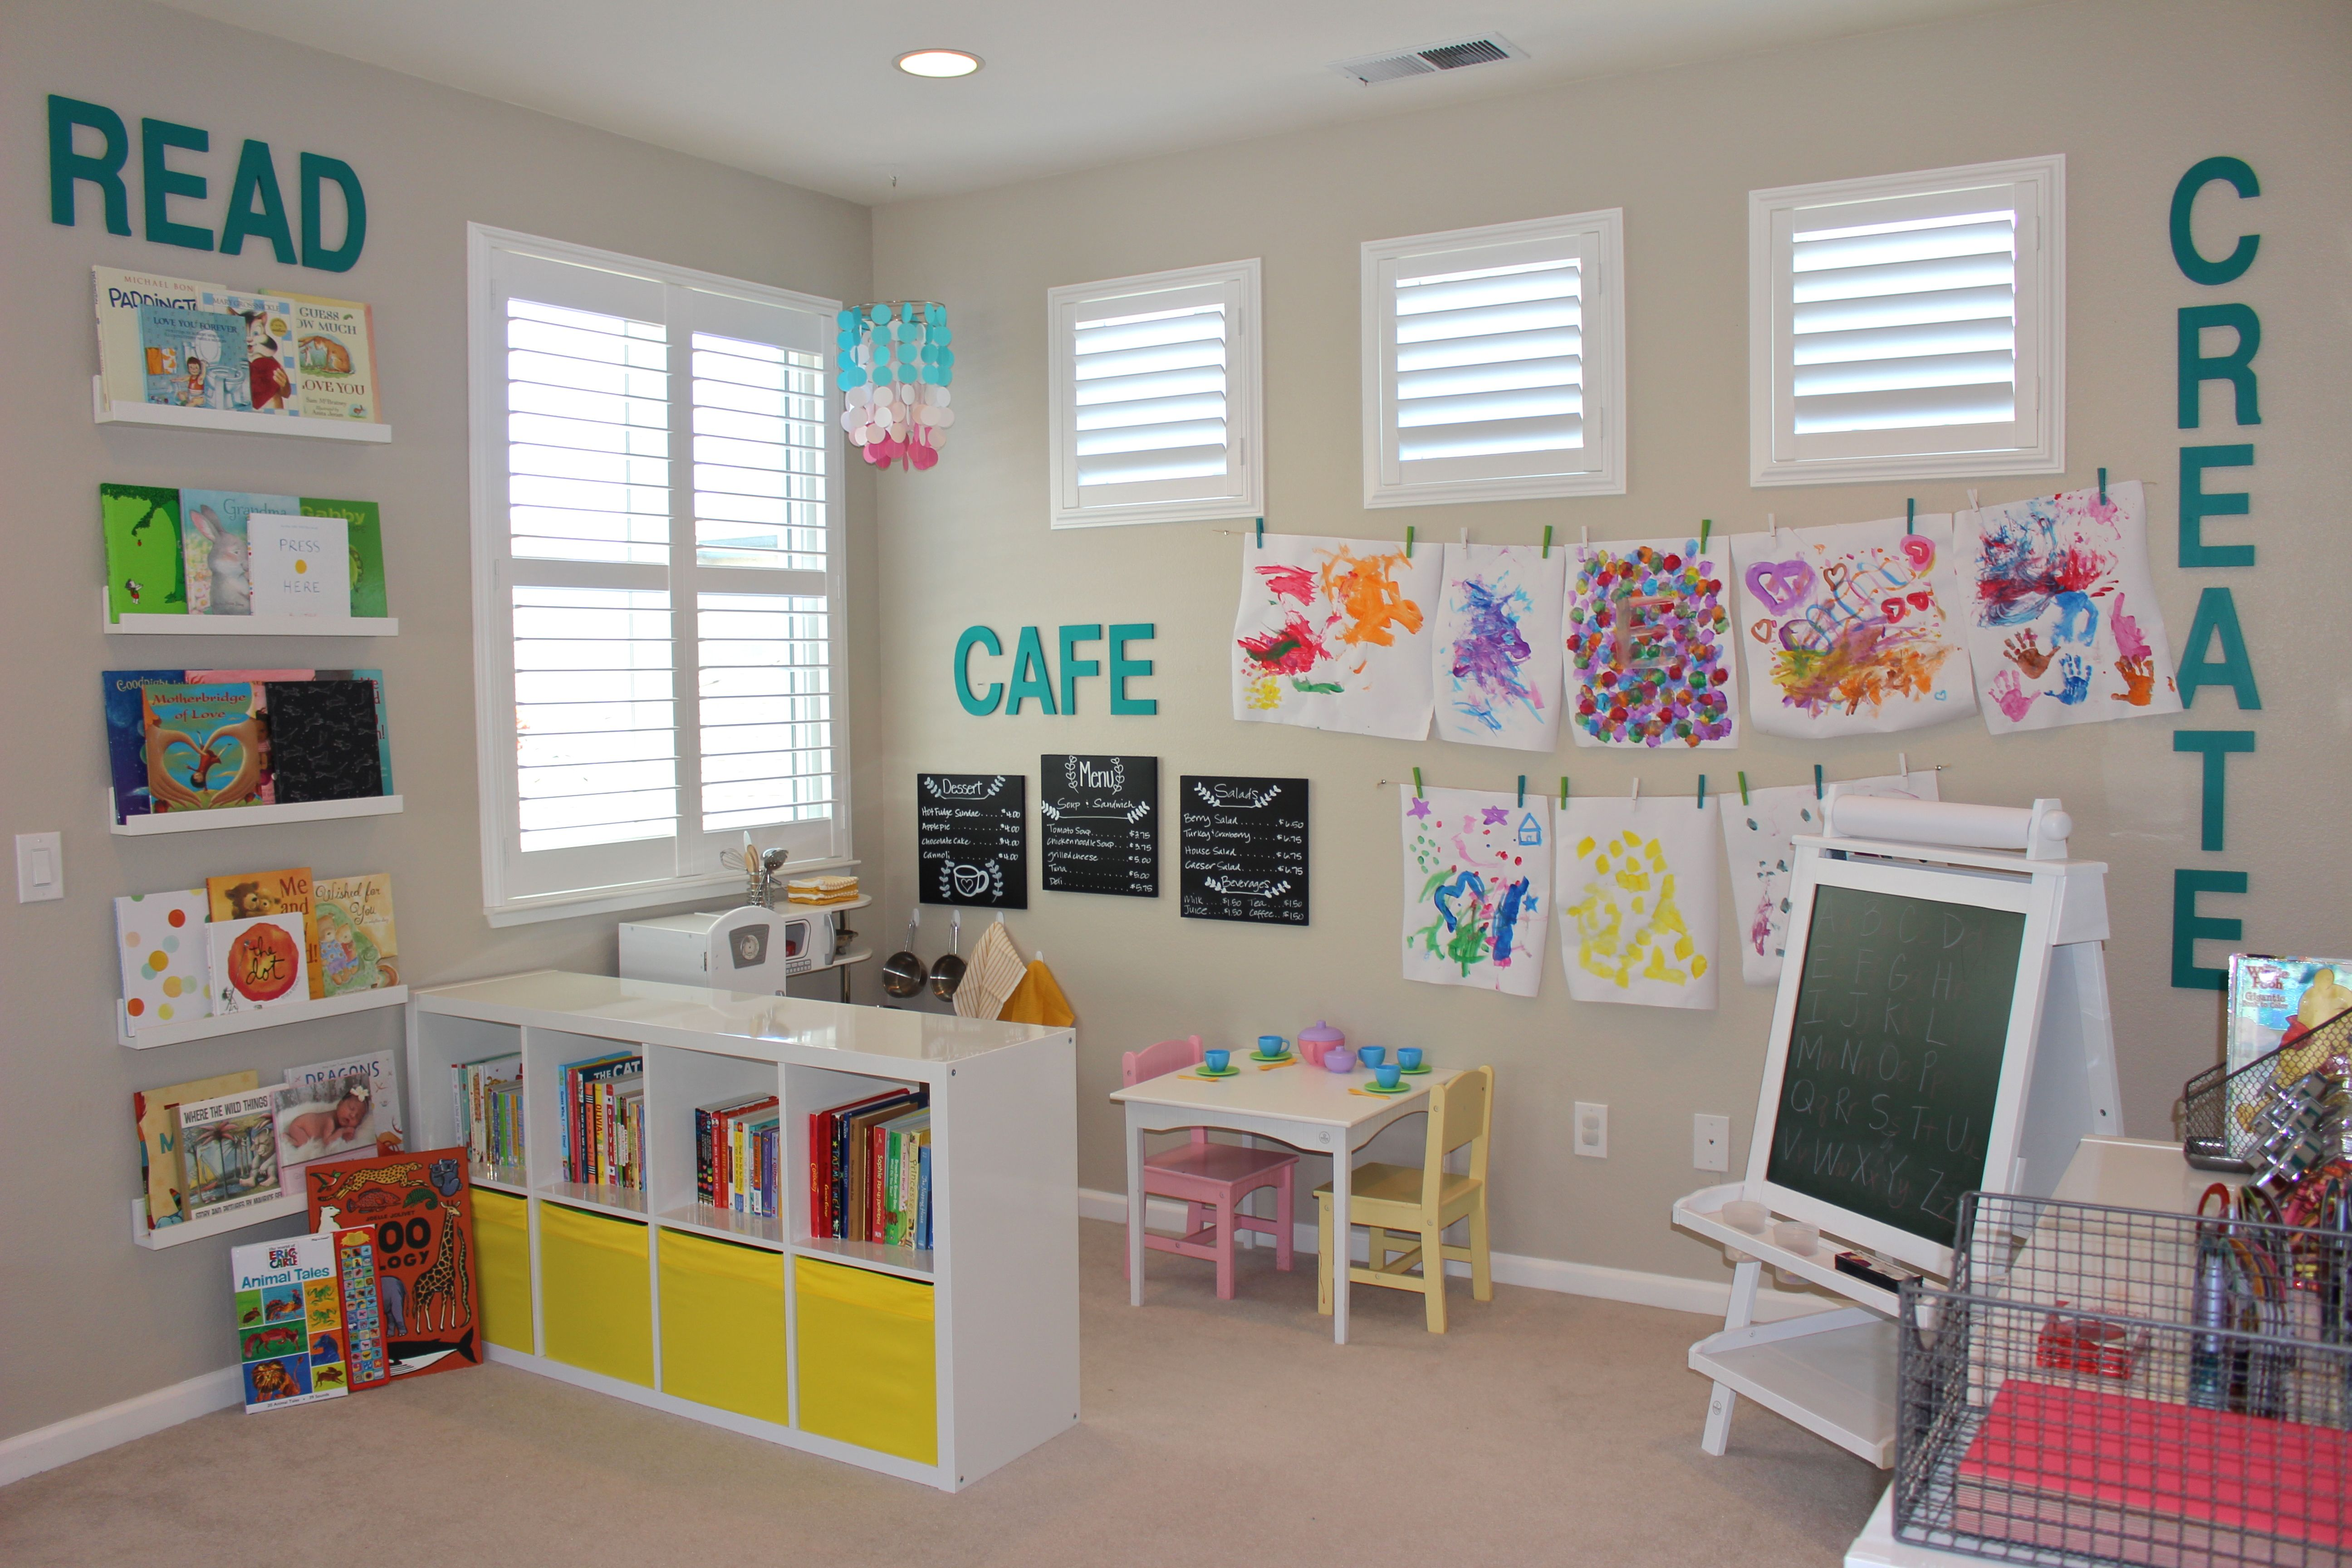 Playrooms For Toddlers Preschool Inspired Playroom  Playrooms School And Room